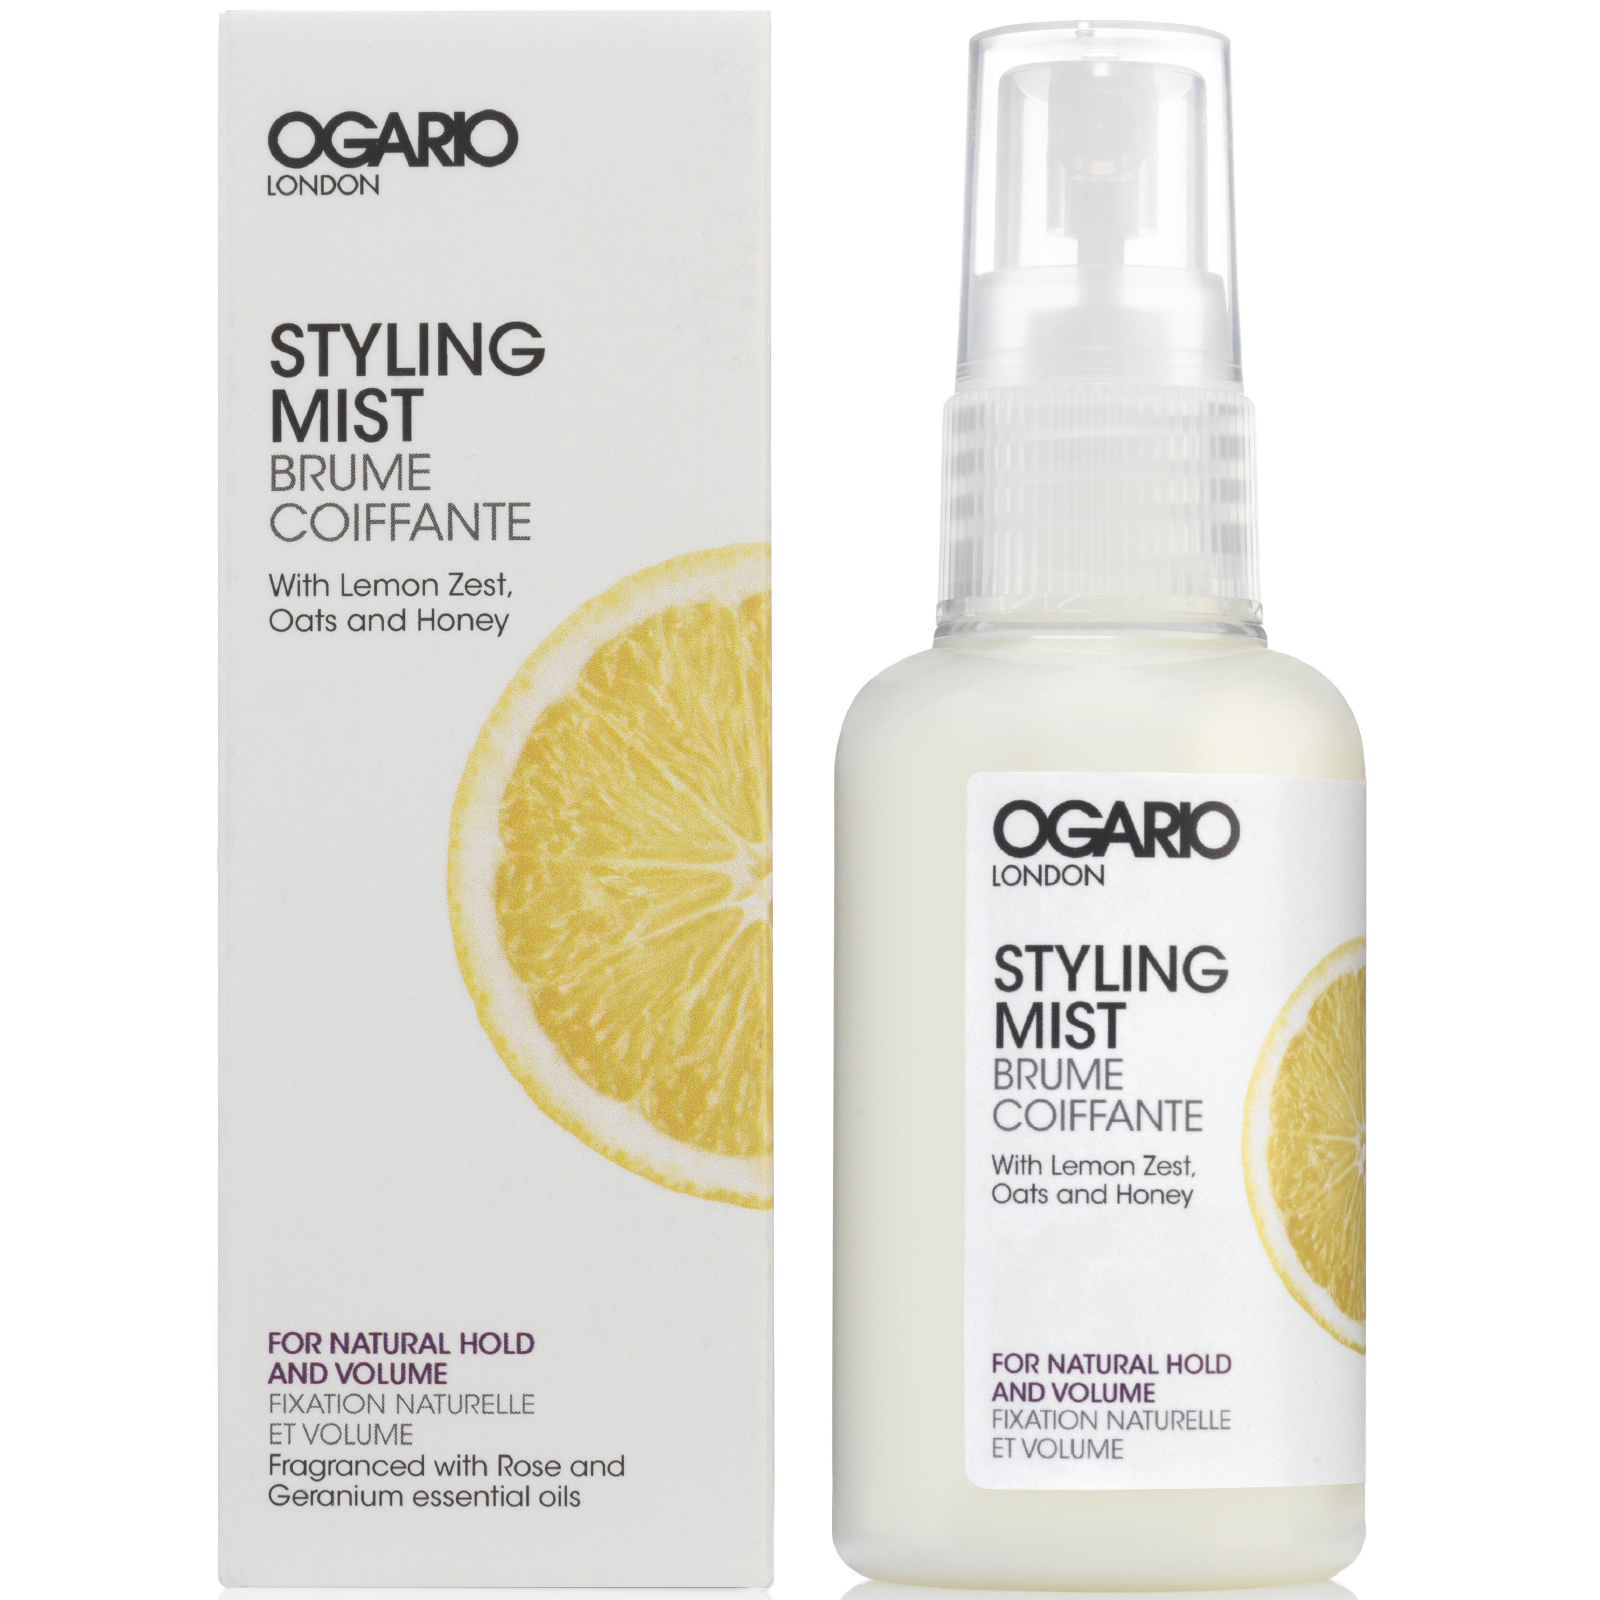 Styling Mist for Natural Hold and Volume; Creating Volume at the Crown